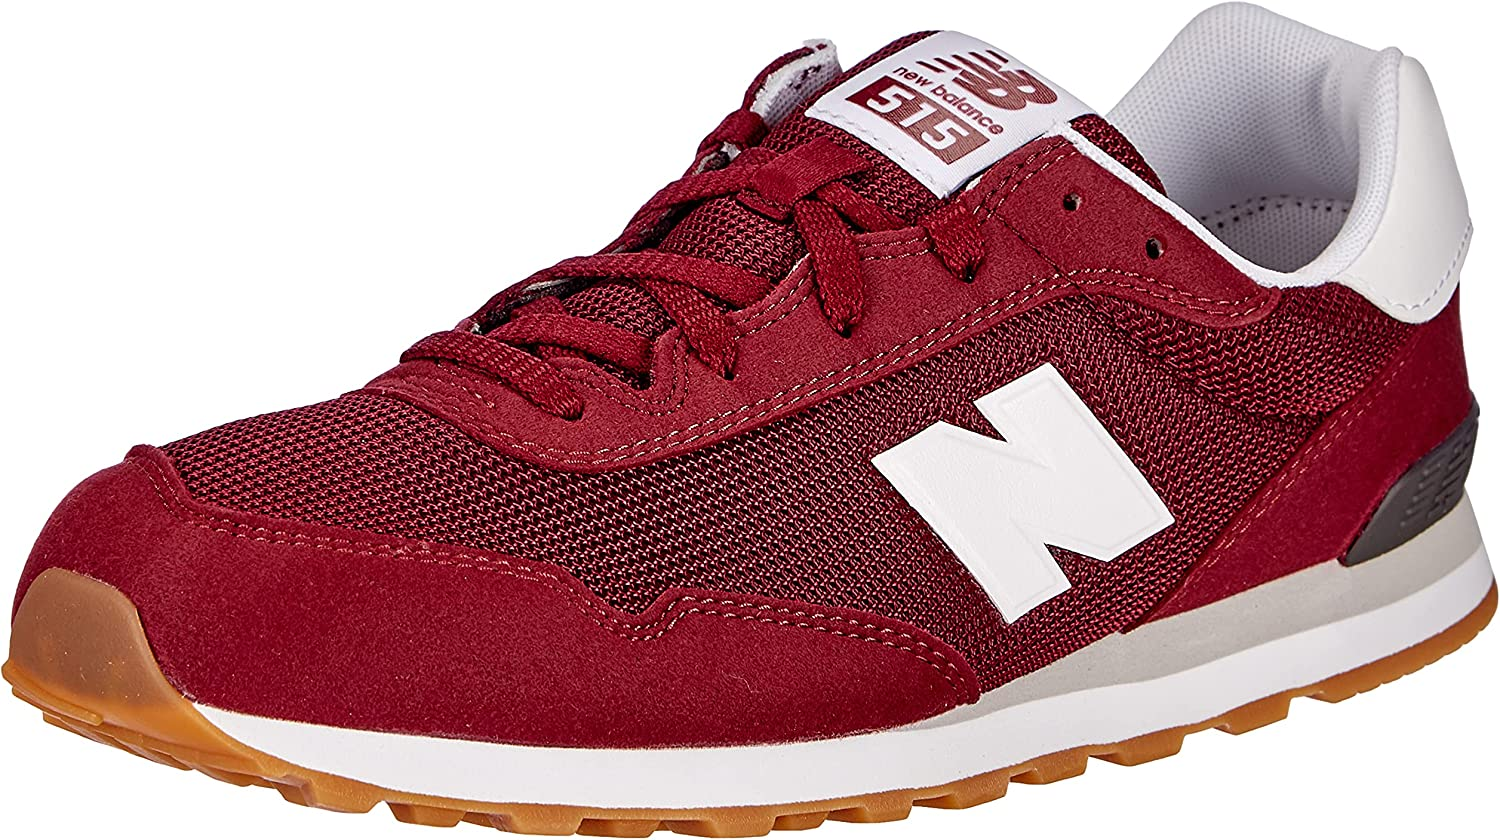 New Balance 55% OFF Kid's 515 V1 Sneaker Lace-Up Max 51% OFF